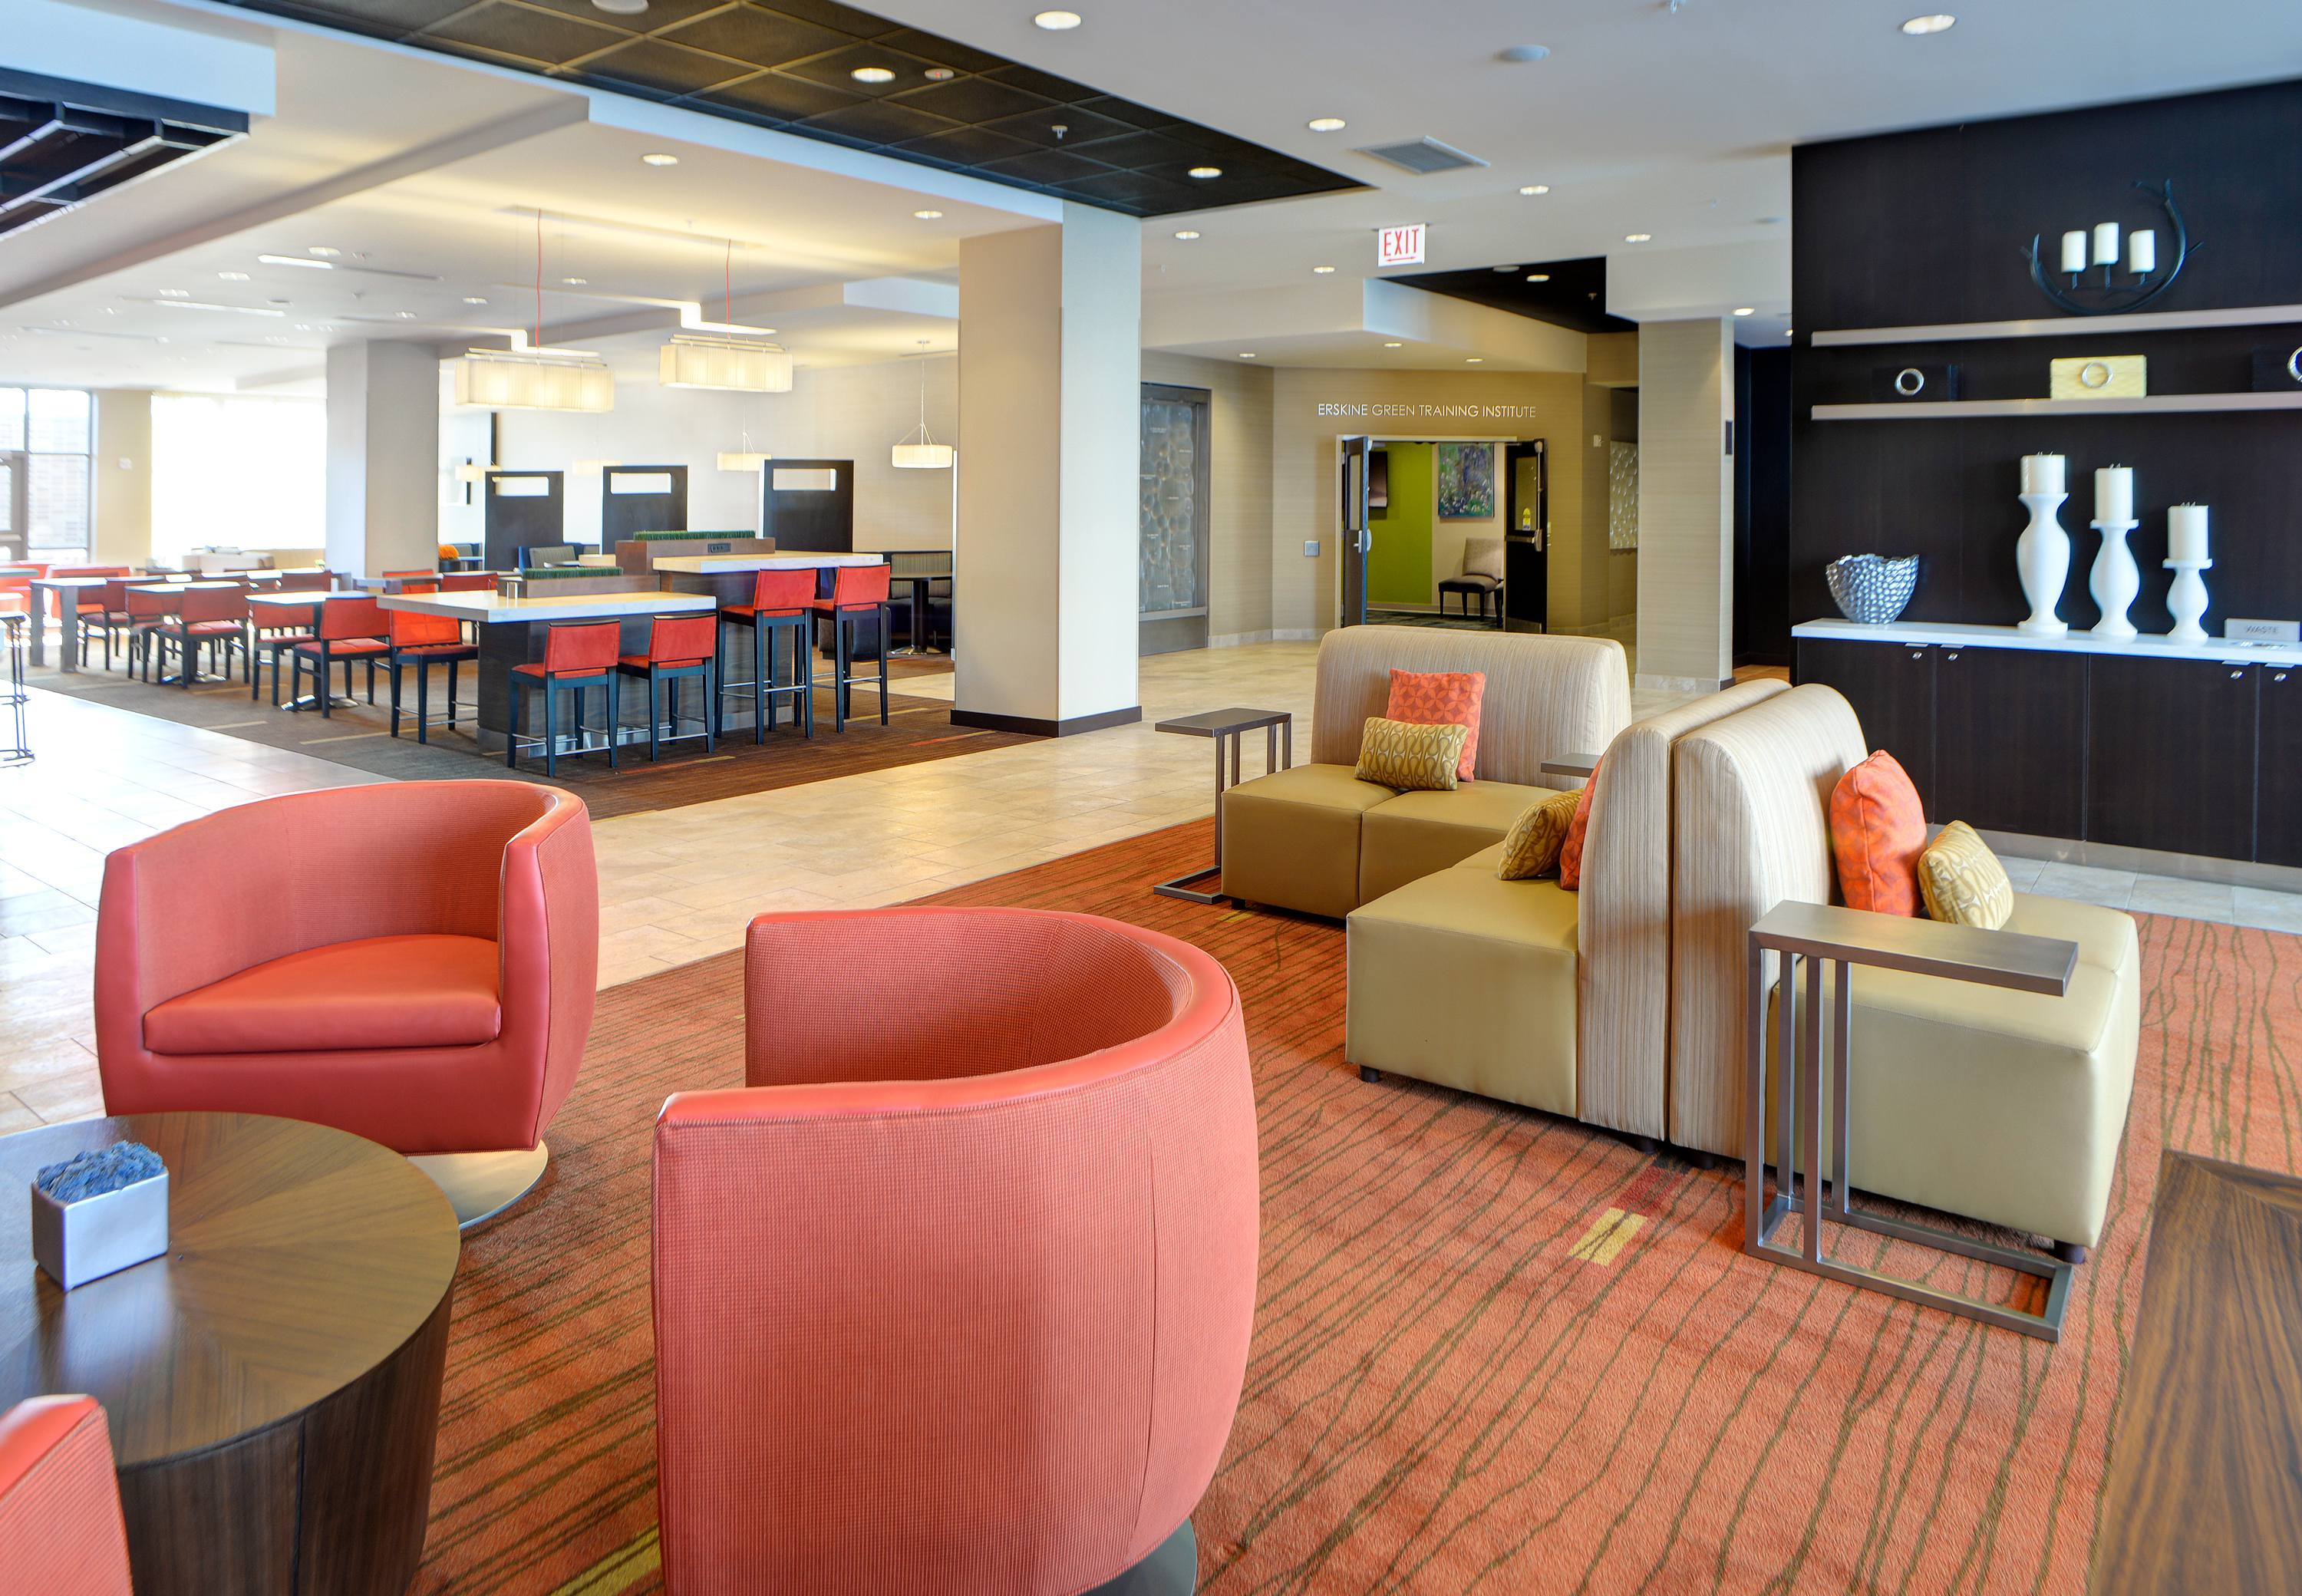 Courtyard by Marriott Muncie at Horizon Convention Center image 12